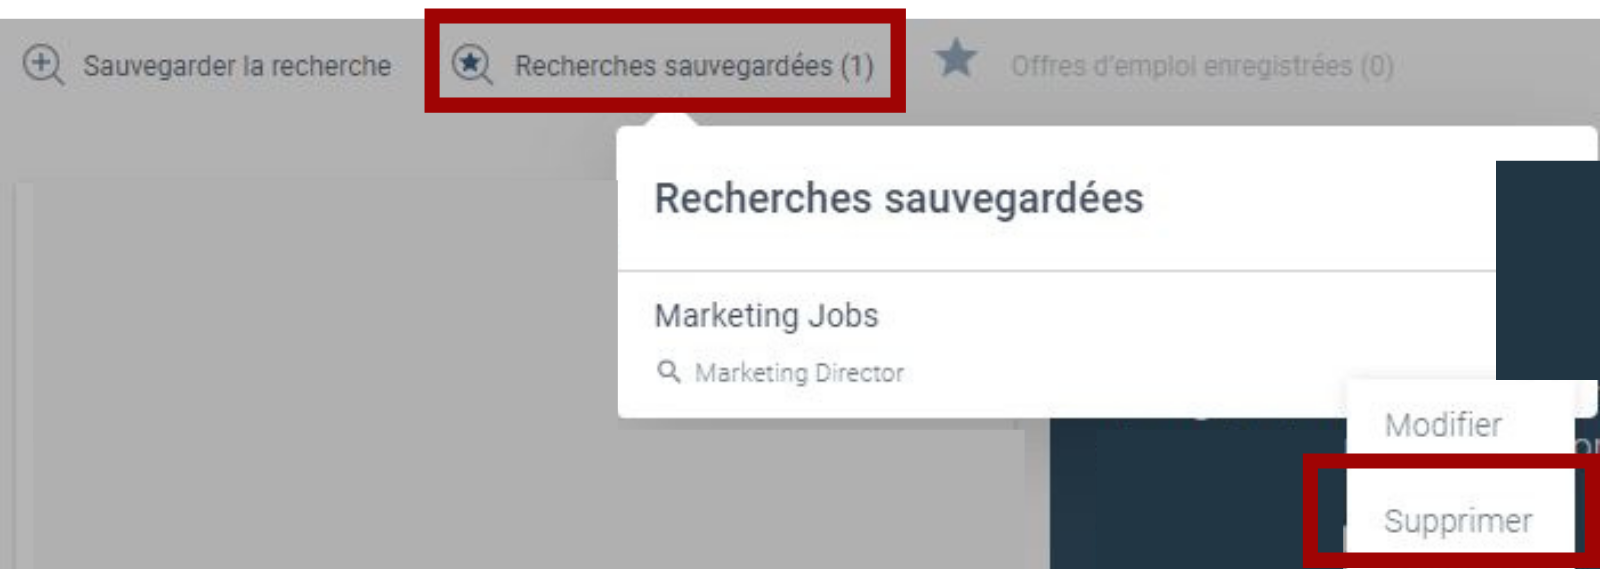 JobLeads_Delete_Saved_Search.png